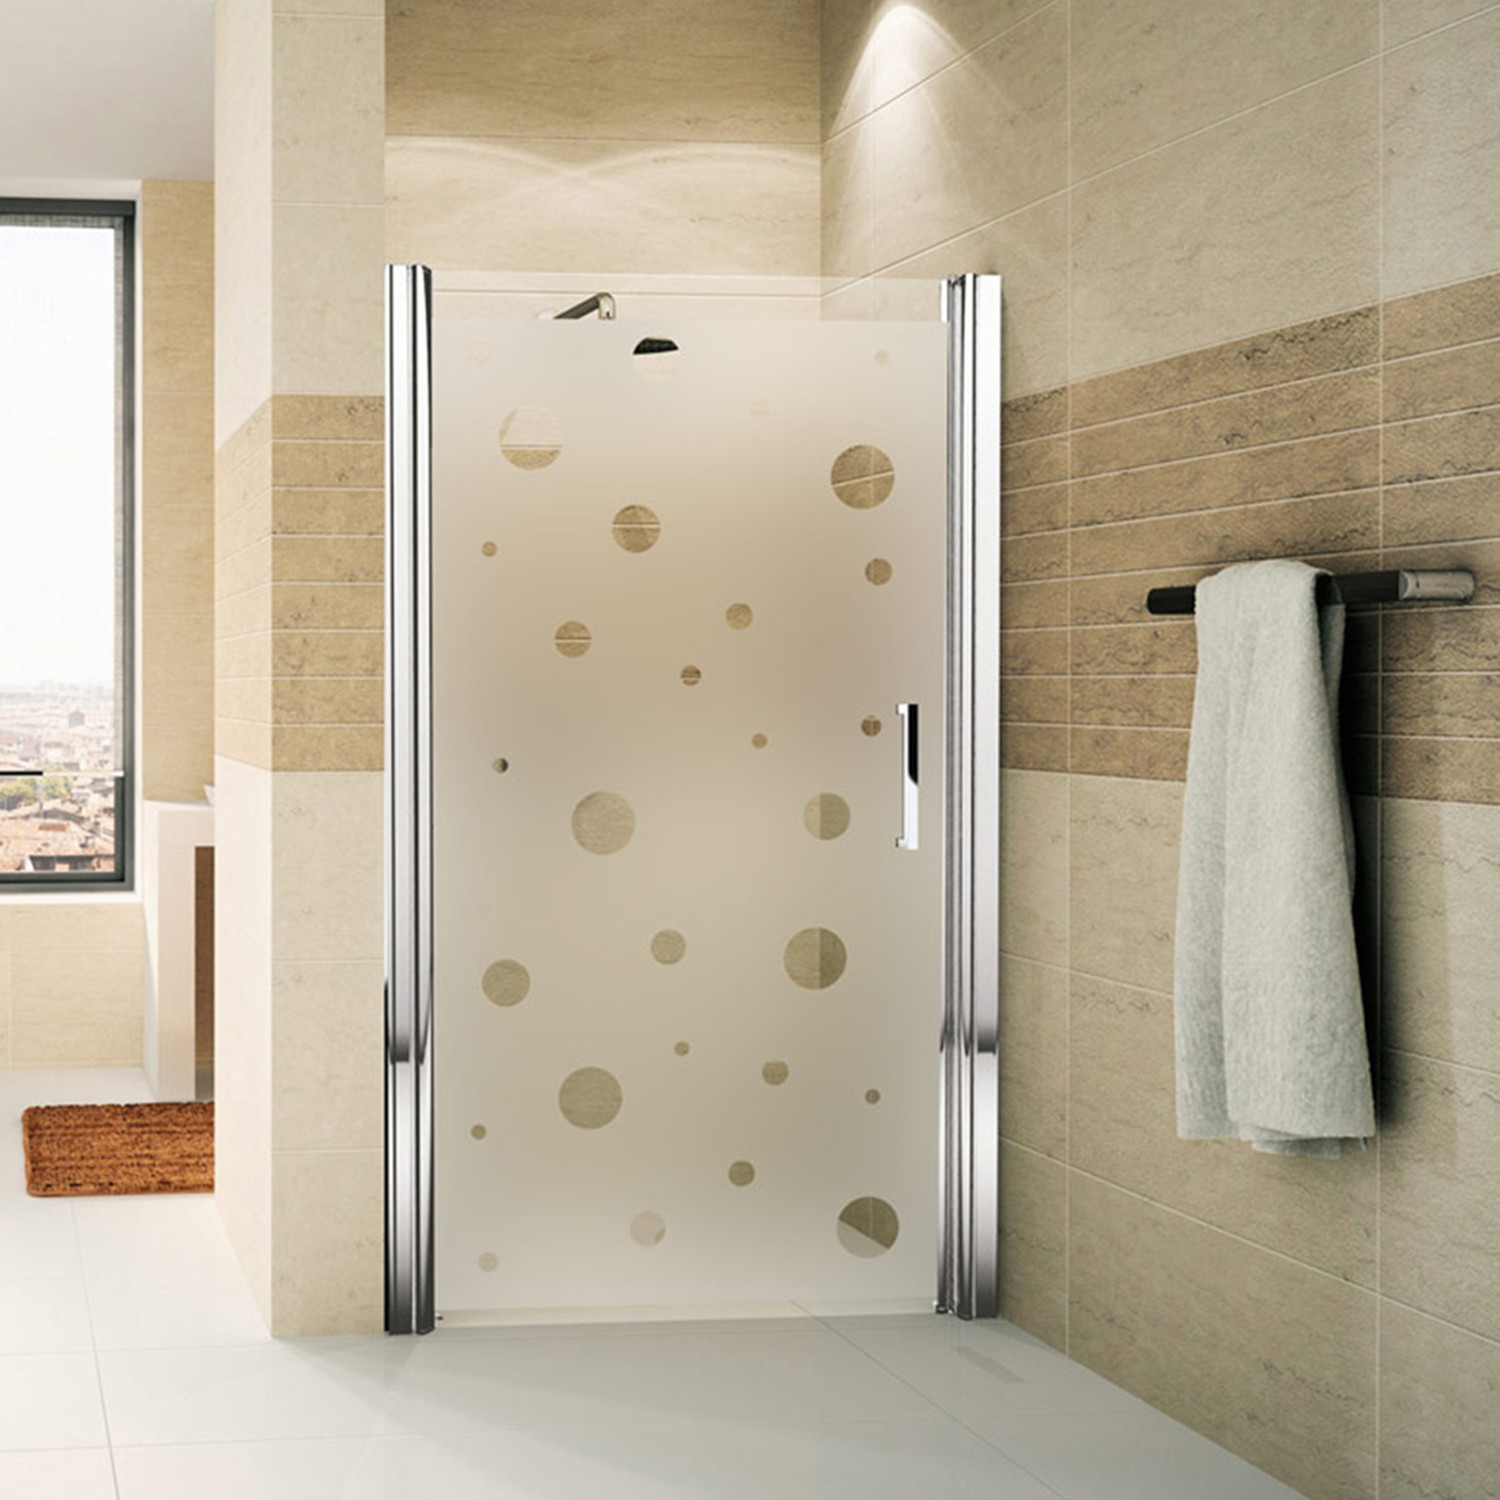 Bubbles shower door decal